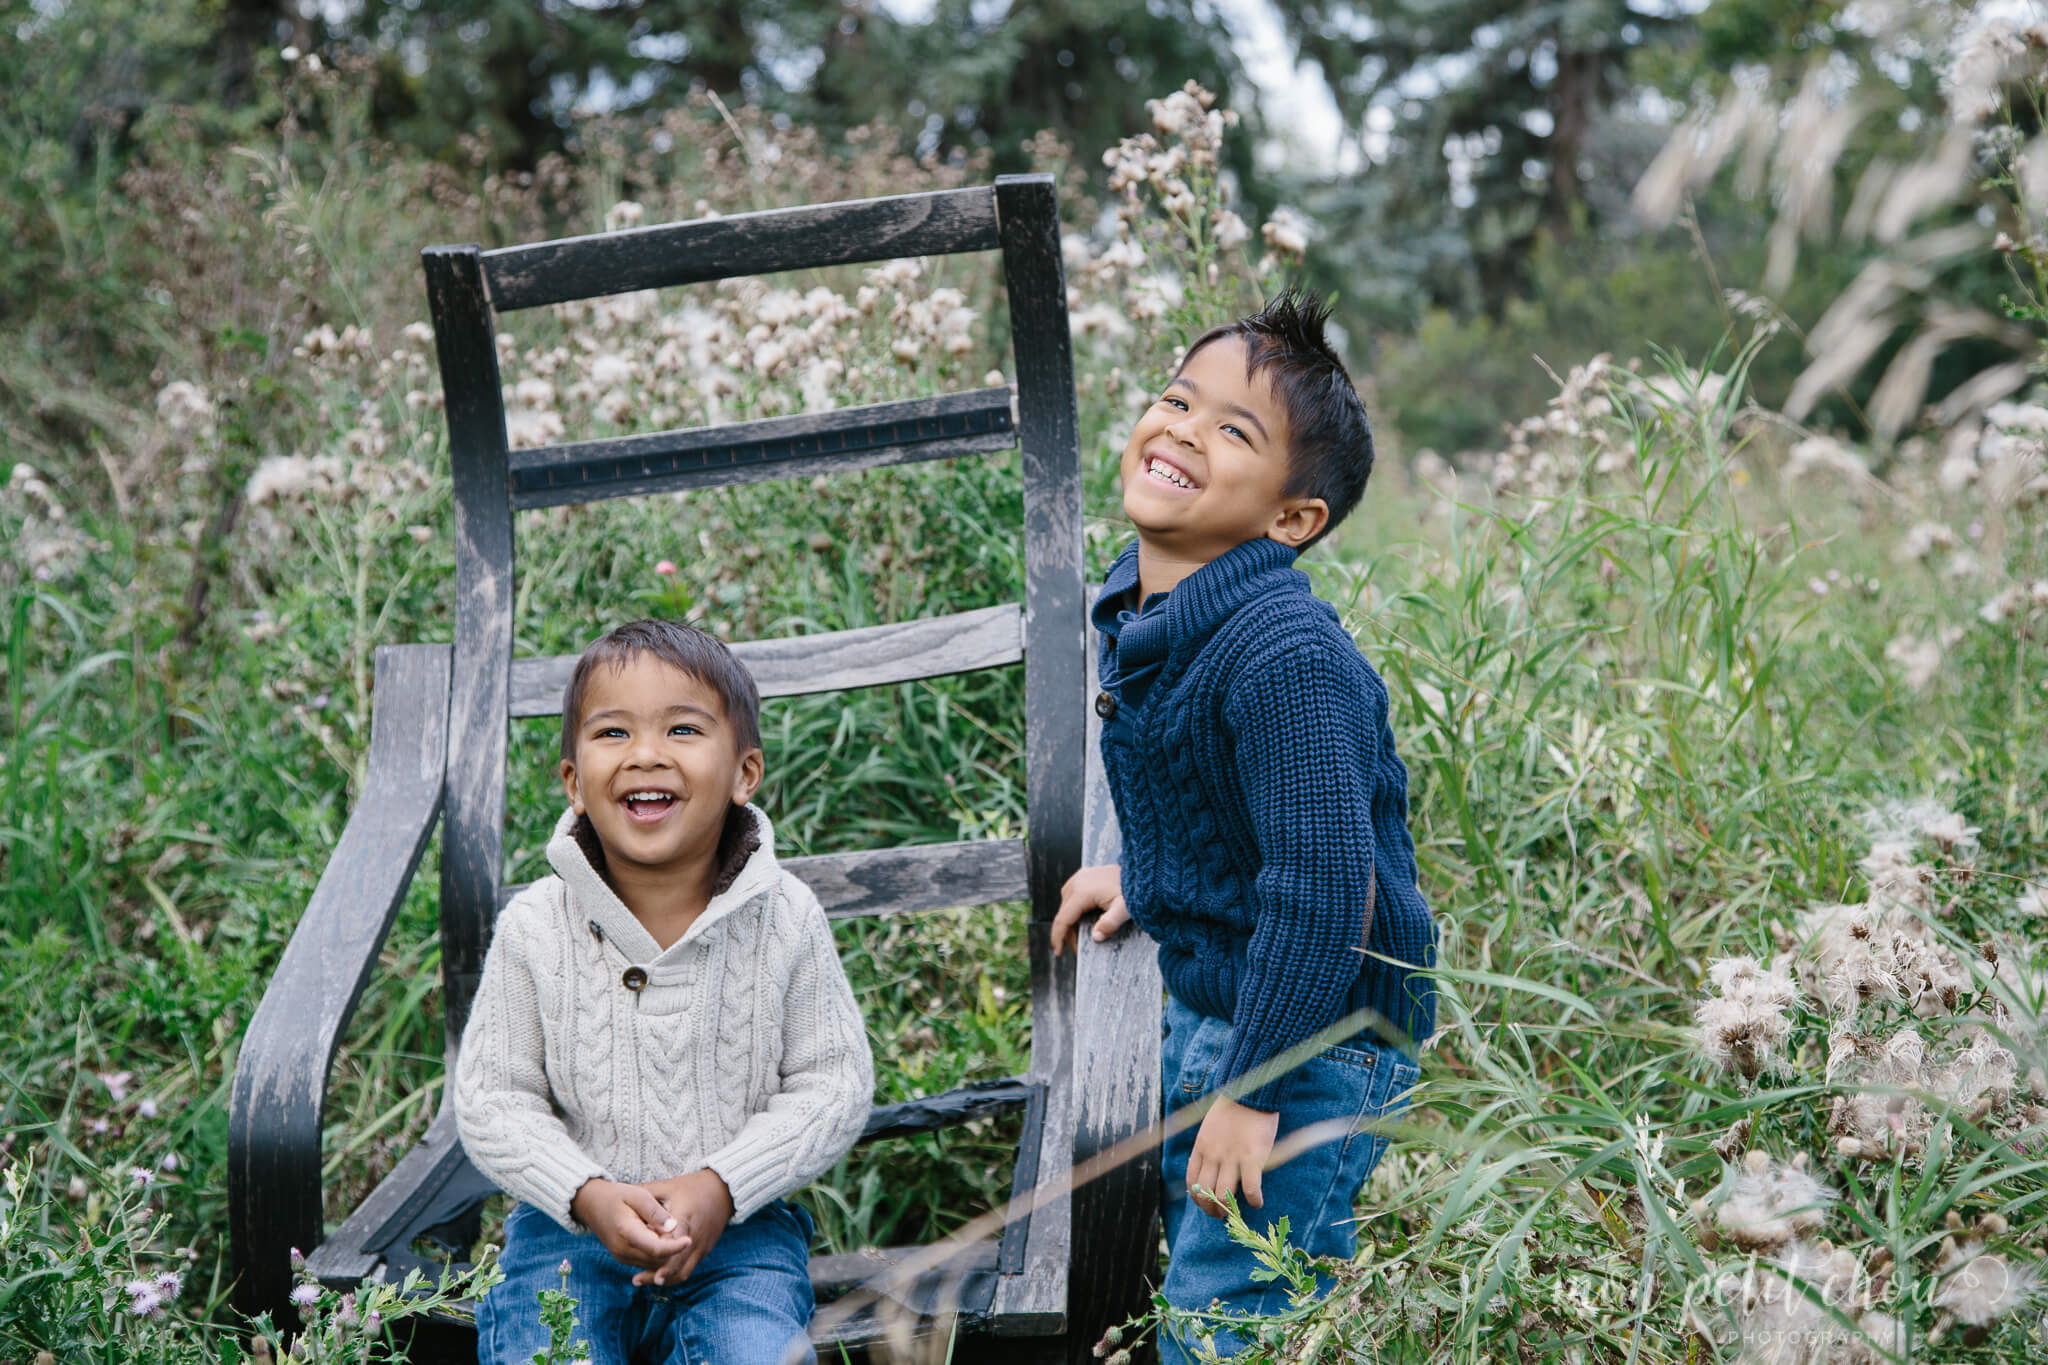 Two children laughing and sitting on prop dressed for family portrait session.